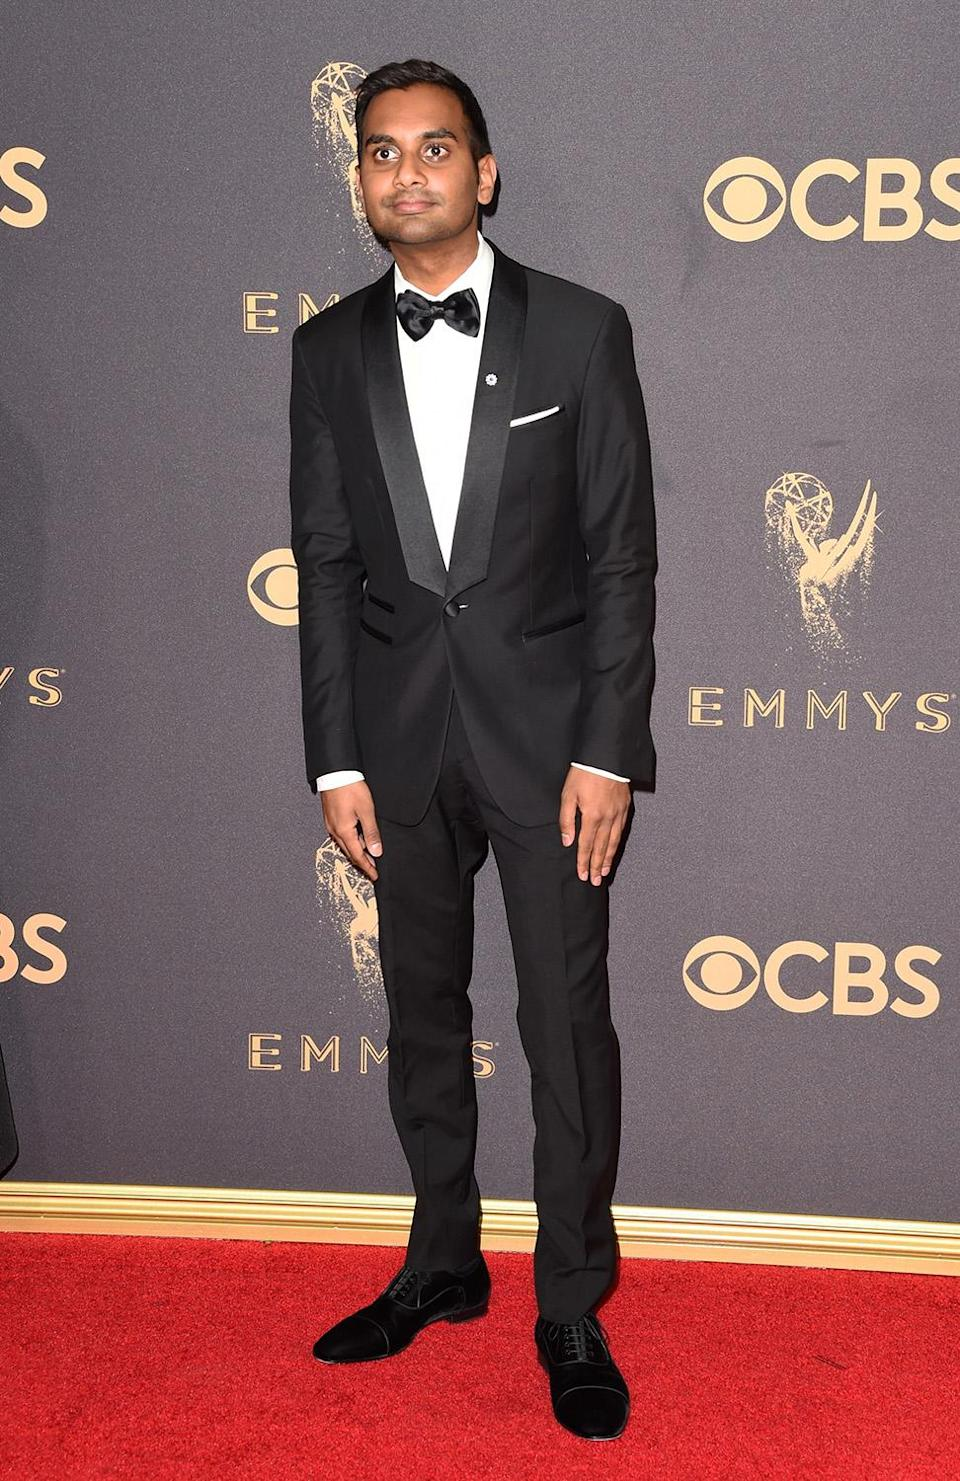 <p>Aziz Ansari attends the 69th Annual Primetime Emmy Awards at Microsoft Theater on September 17, 2017 in Los Angeles, California. (Photo by J. Merritt/Getty Images) </p>